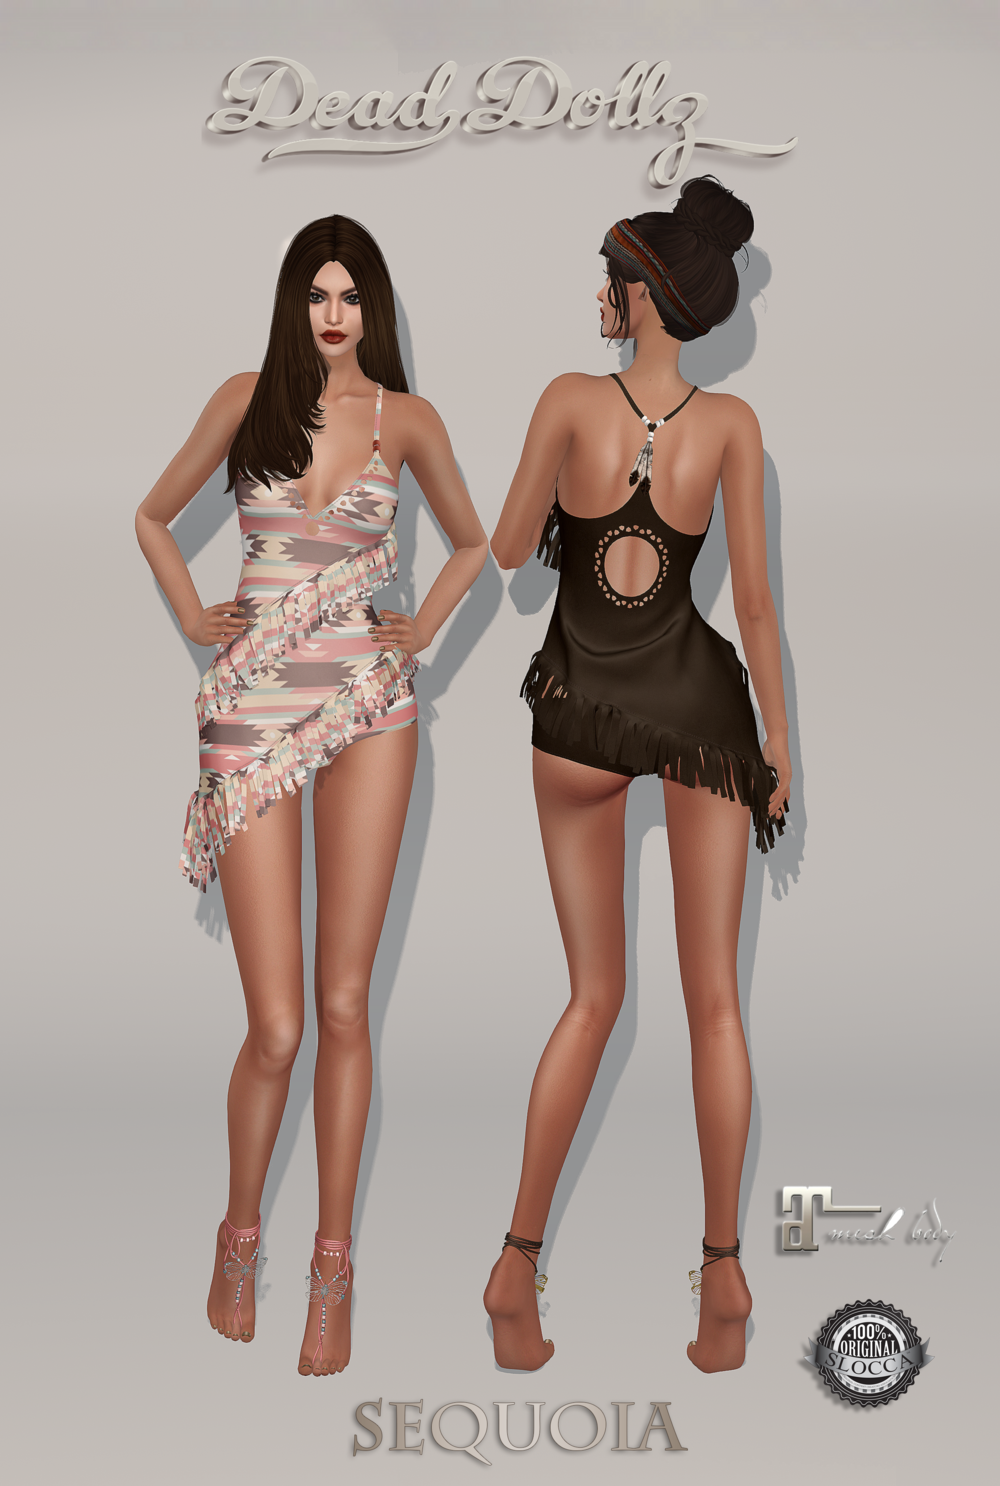 Dead Dollz - Sequoia - Season Story July AD.png